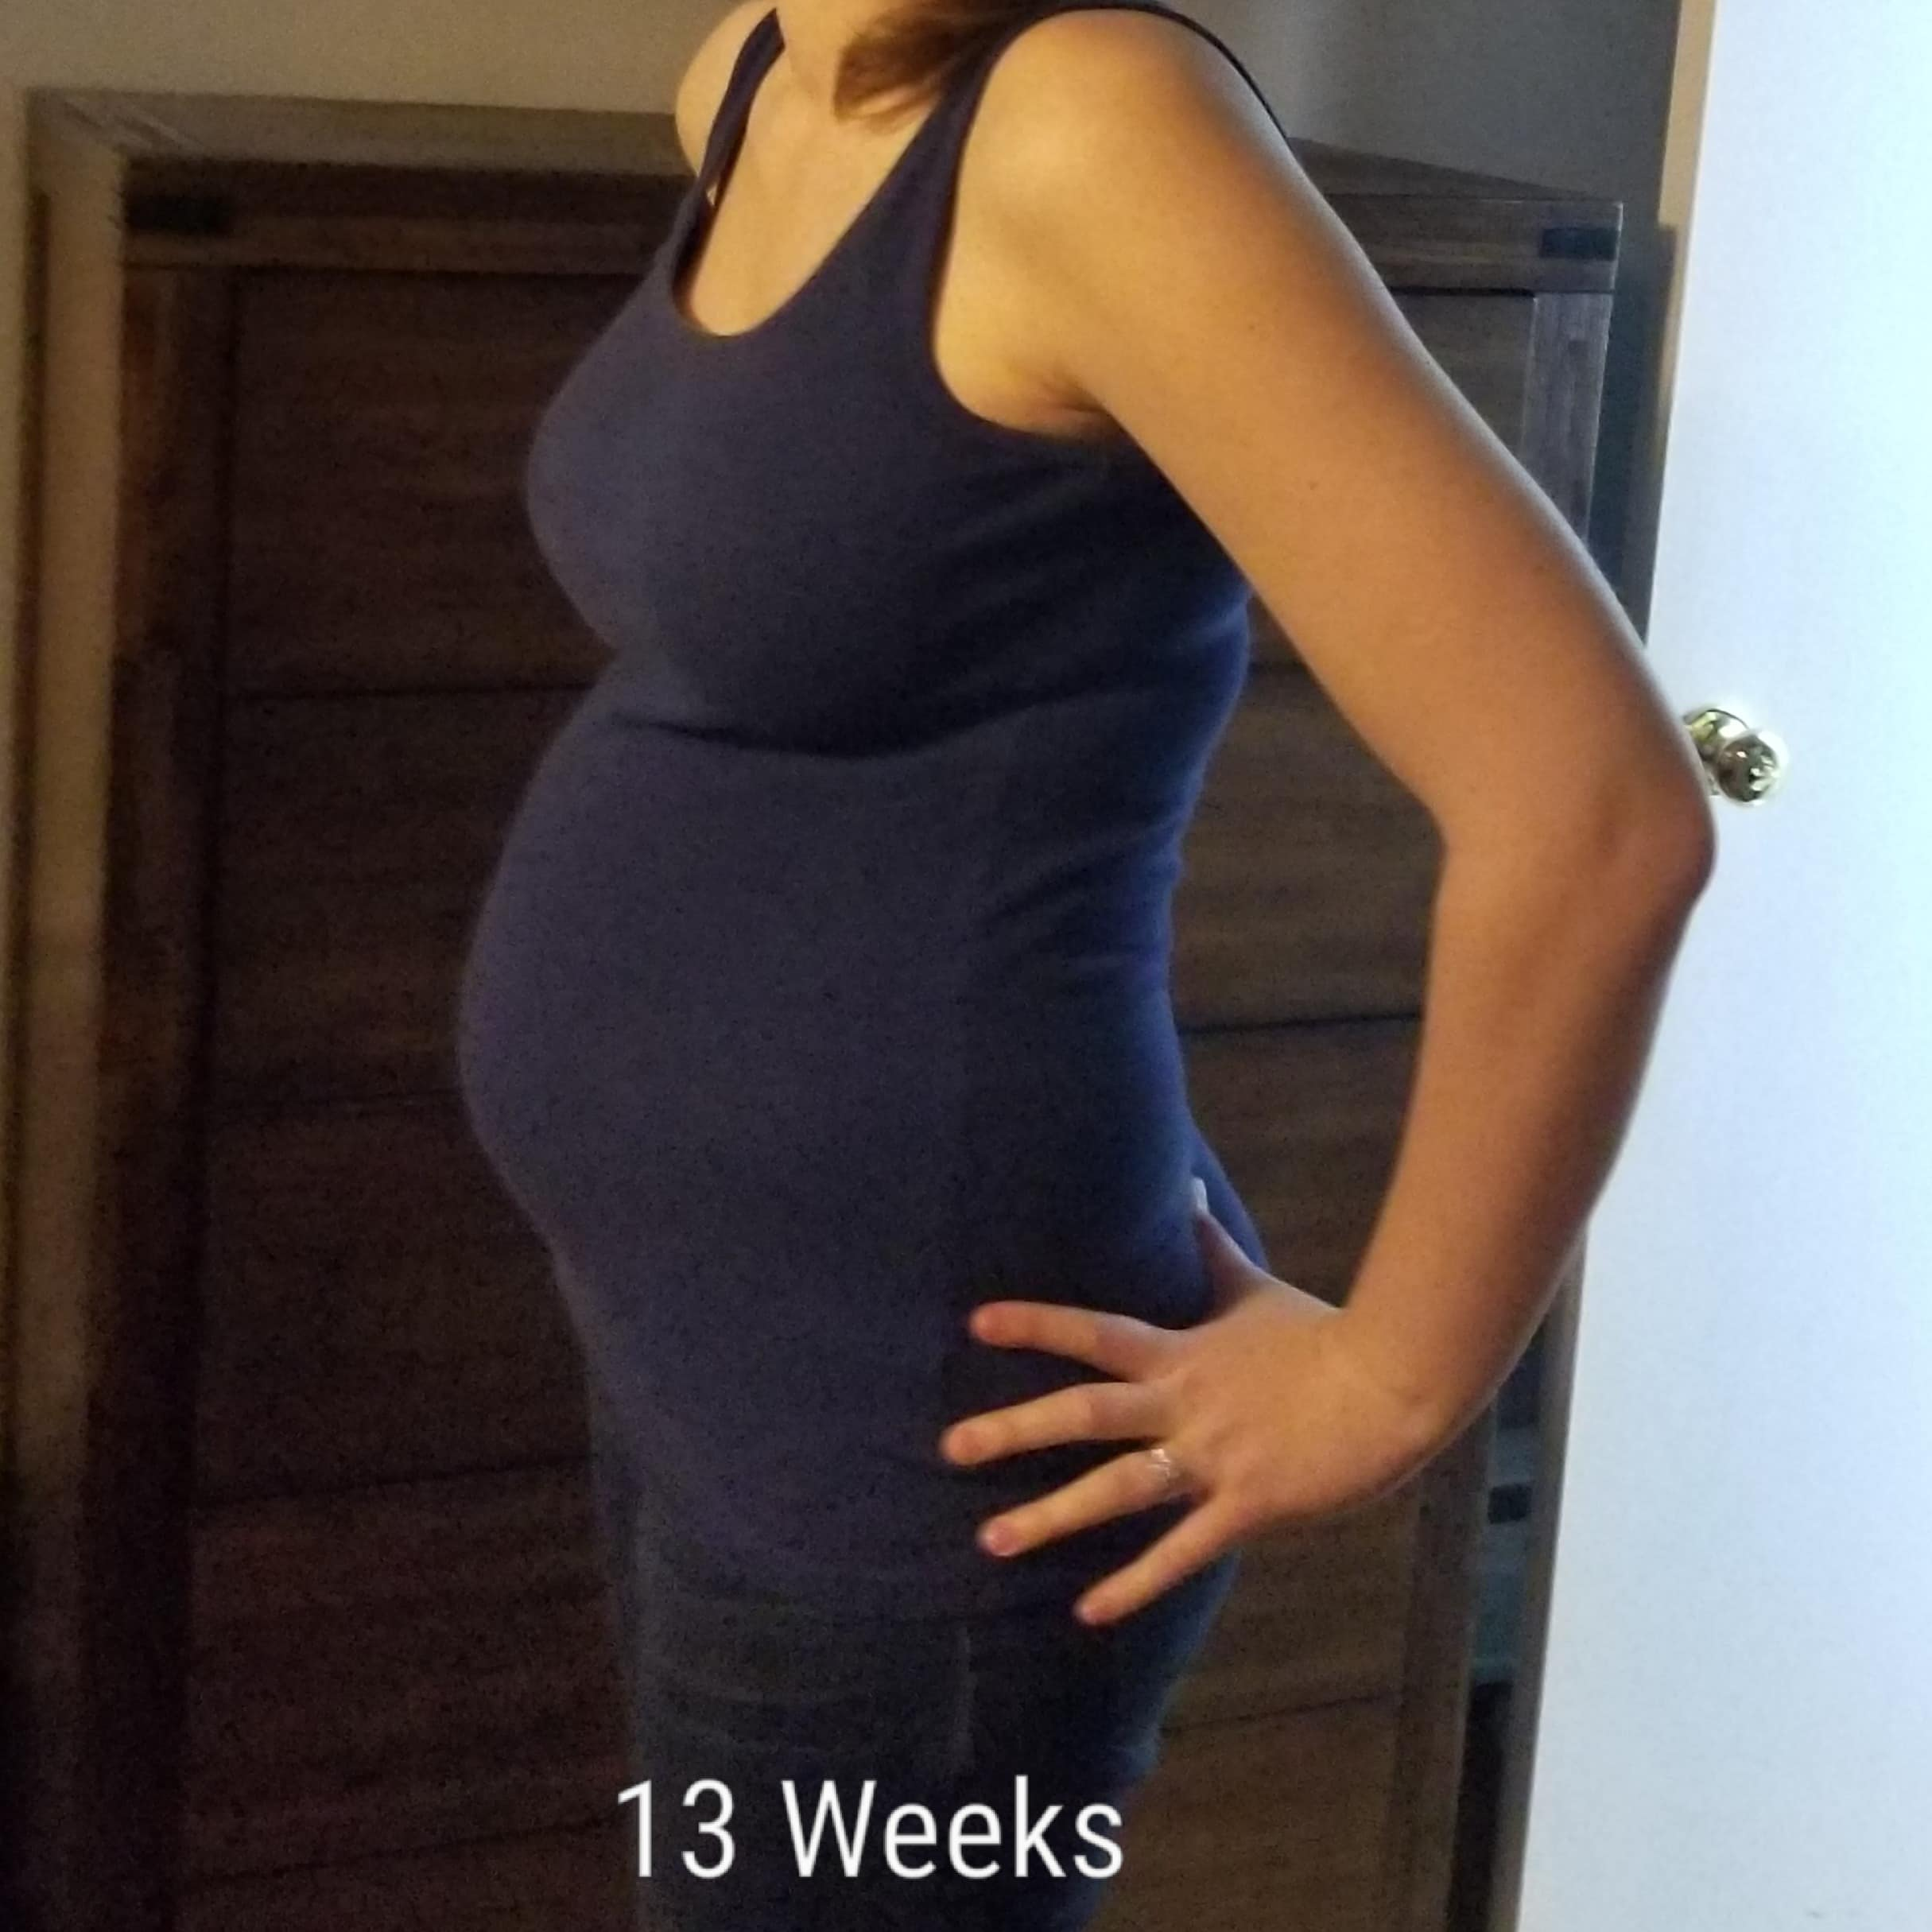 13 weeks pregnant with twins